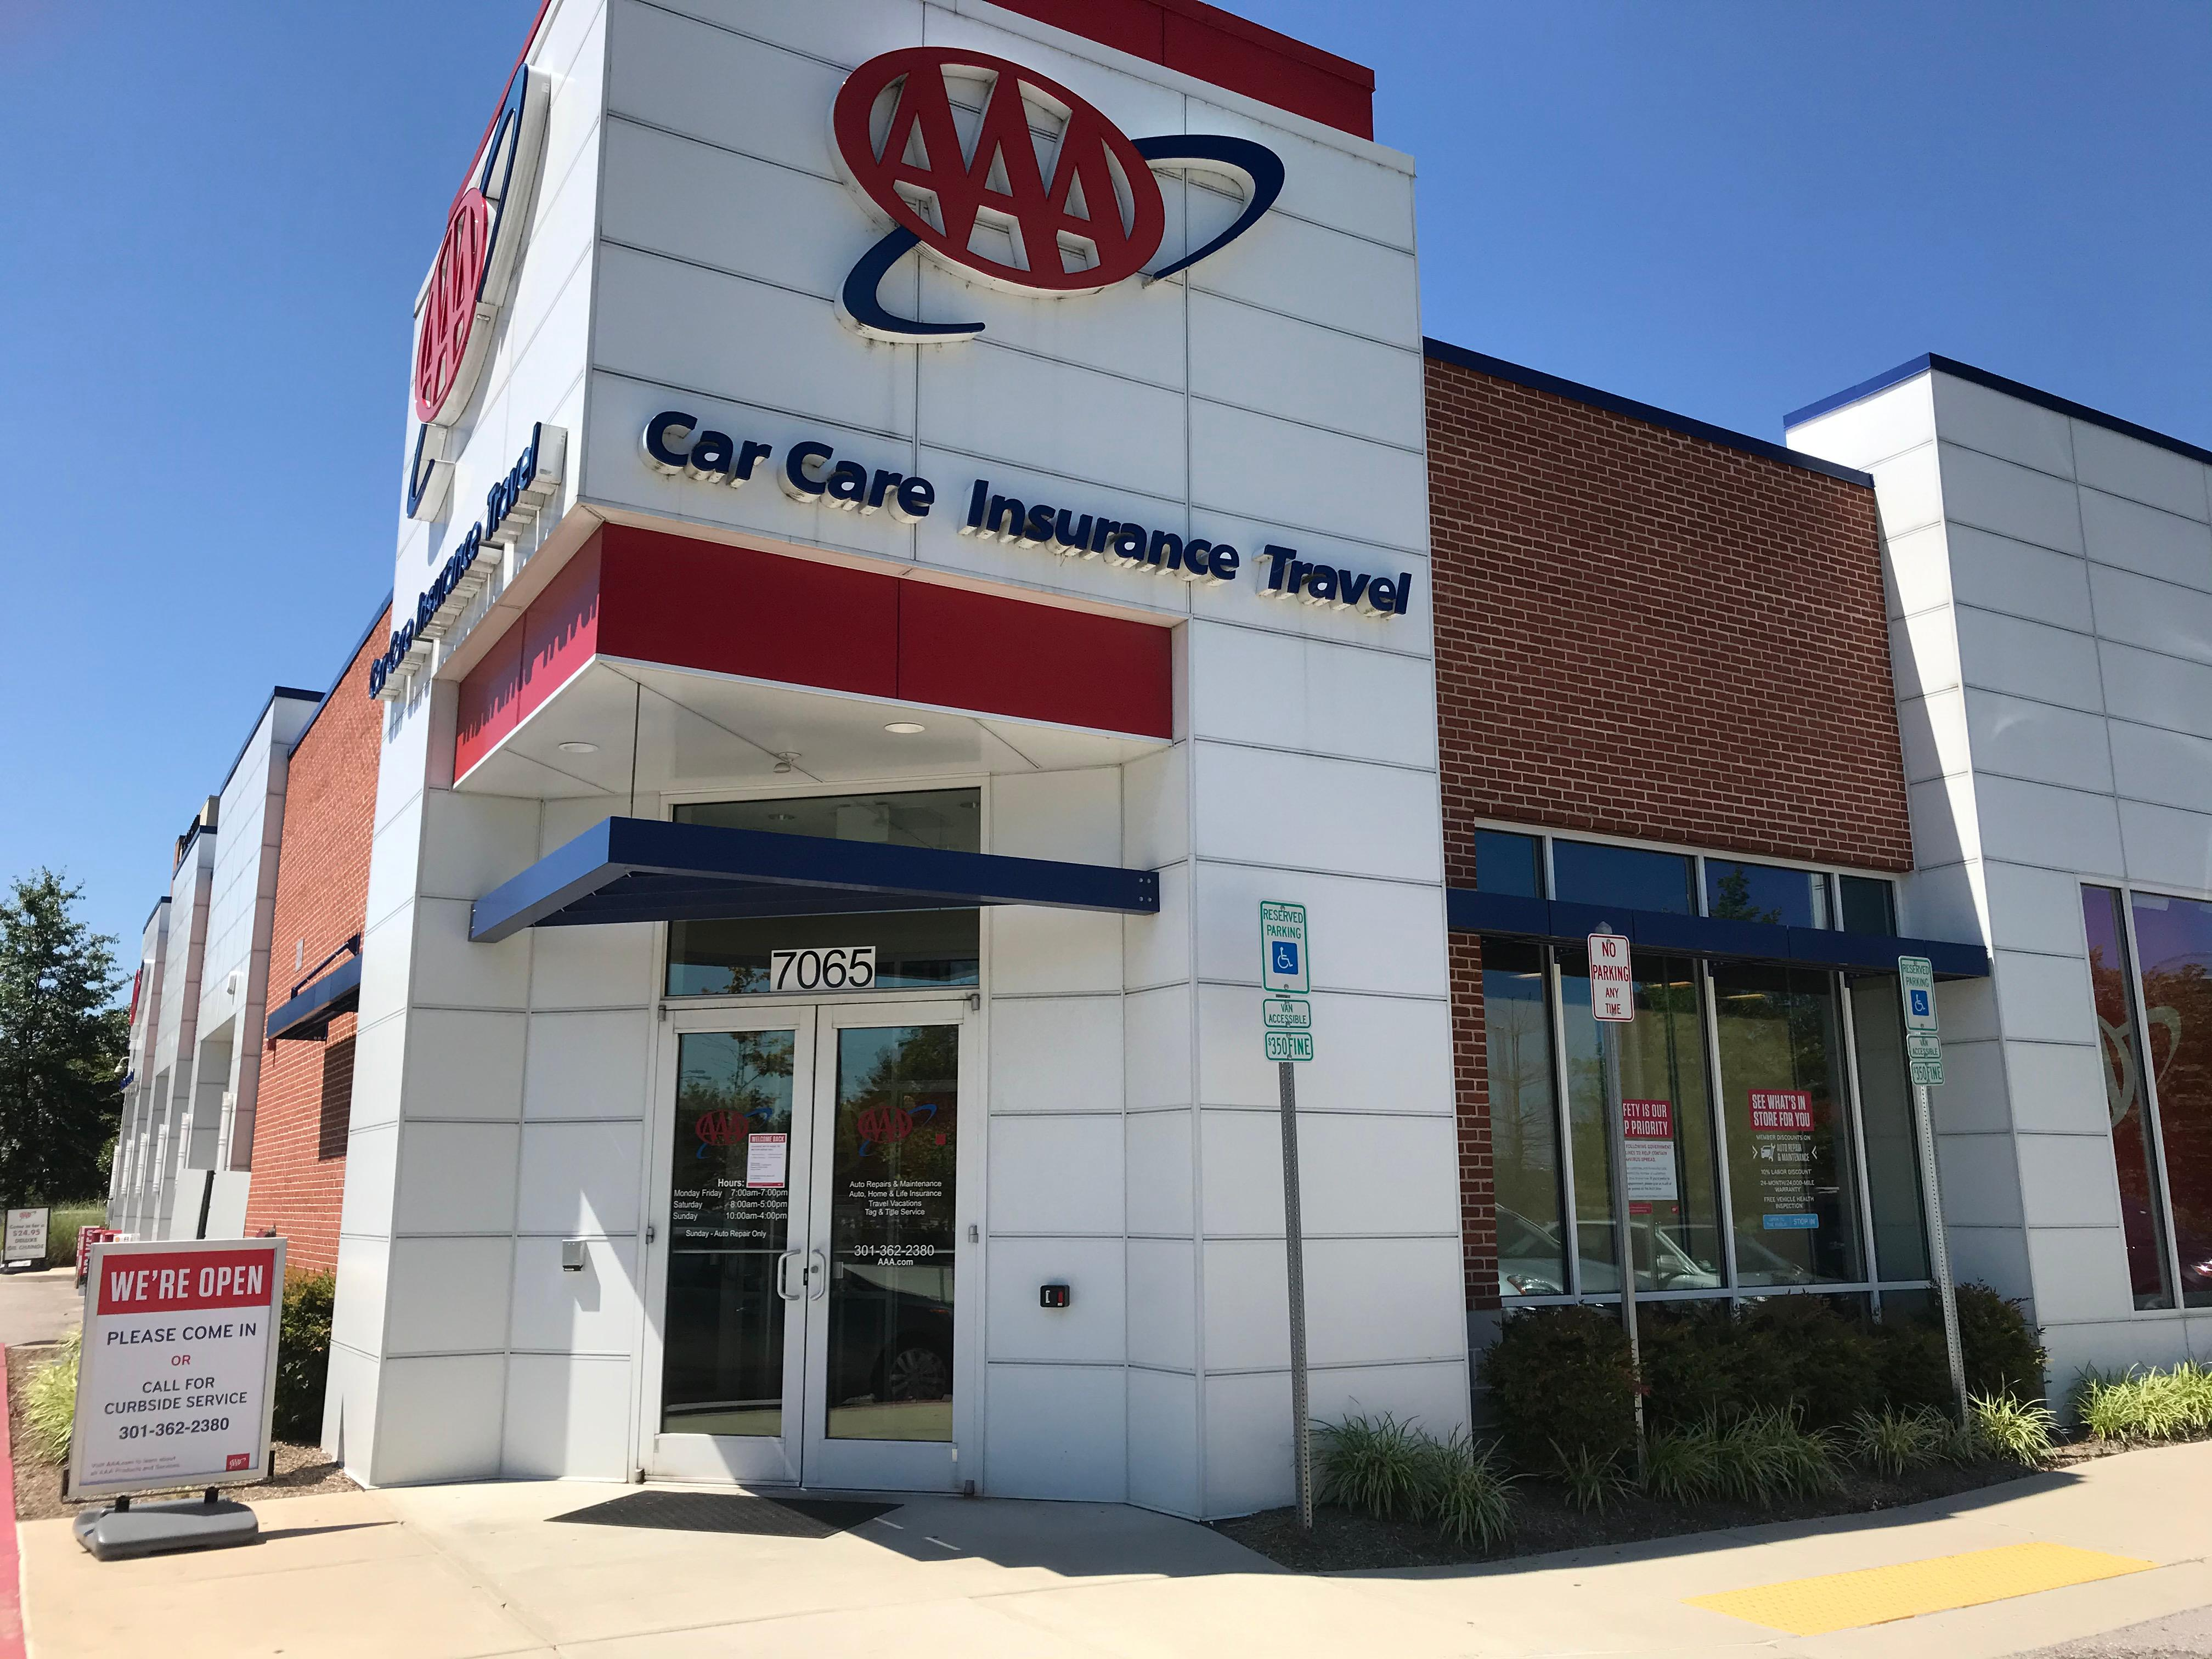 Aaa Columbia Car Care Insurance Travel Center 7065 Minstrel Way Columbia Md General Merchandise Retail Mapquest